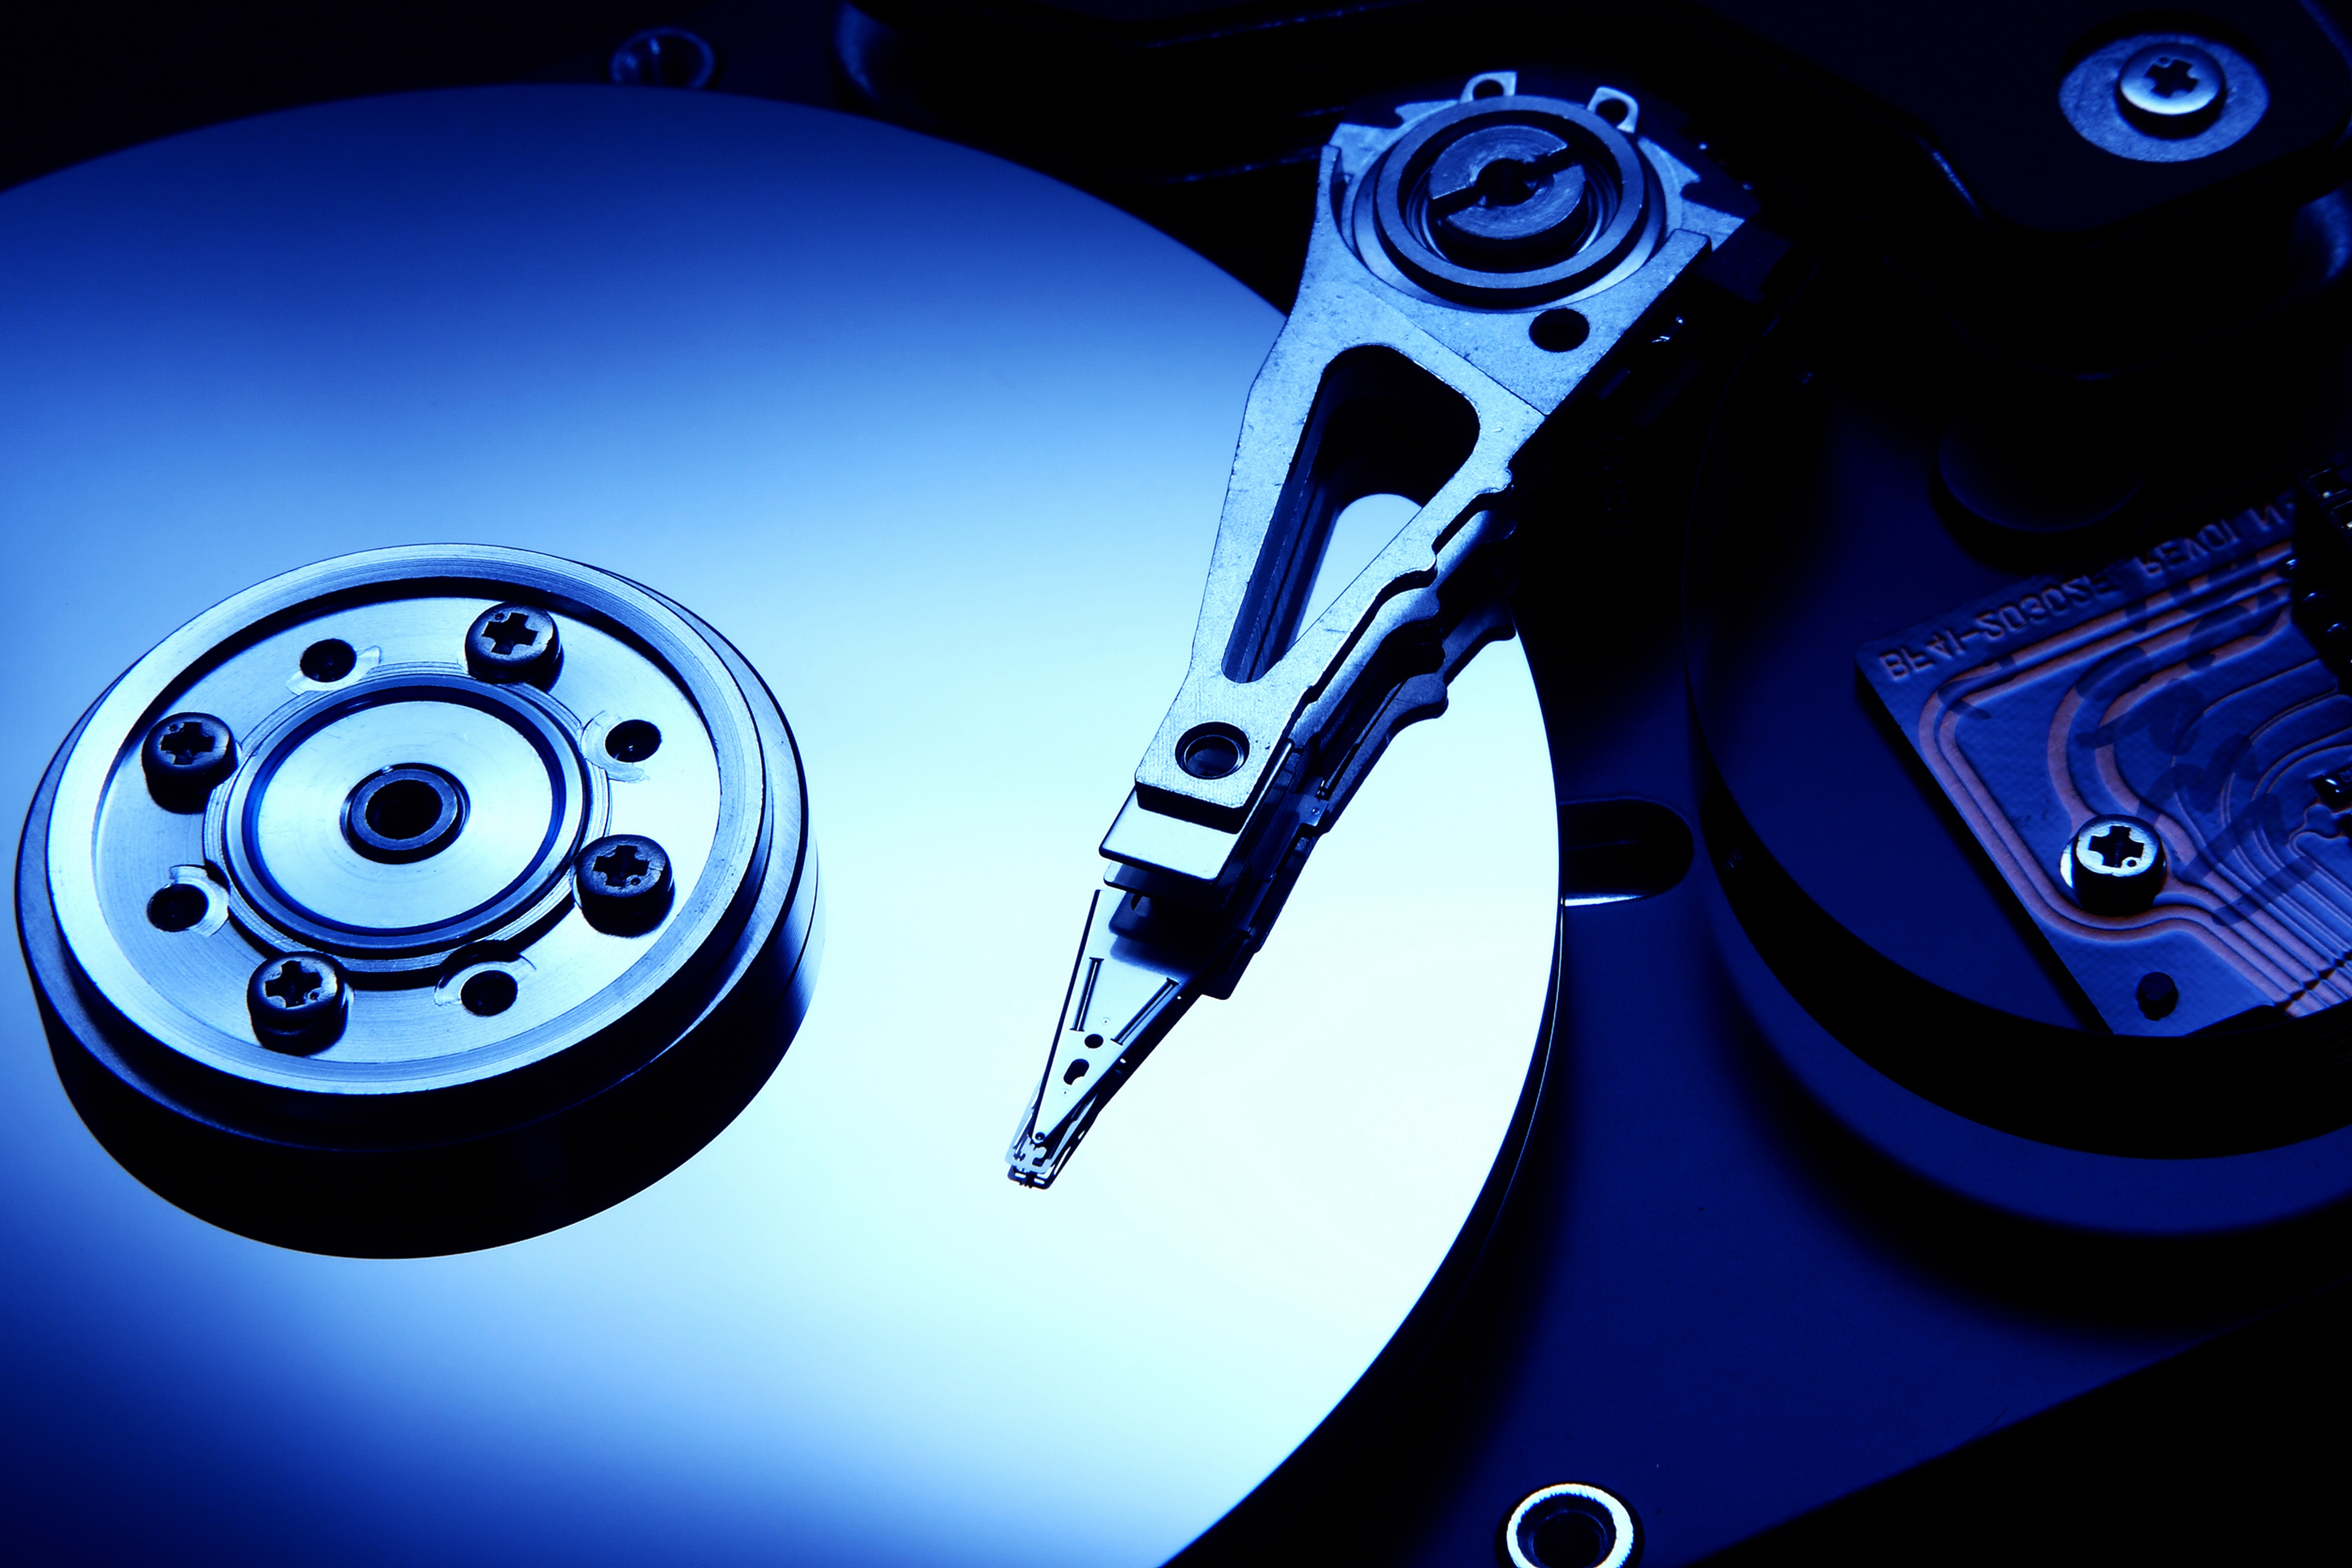 Hard Disk Drive Wallpapers Achtergronden 5000x3334 ID613335 5000x3334